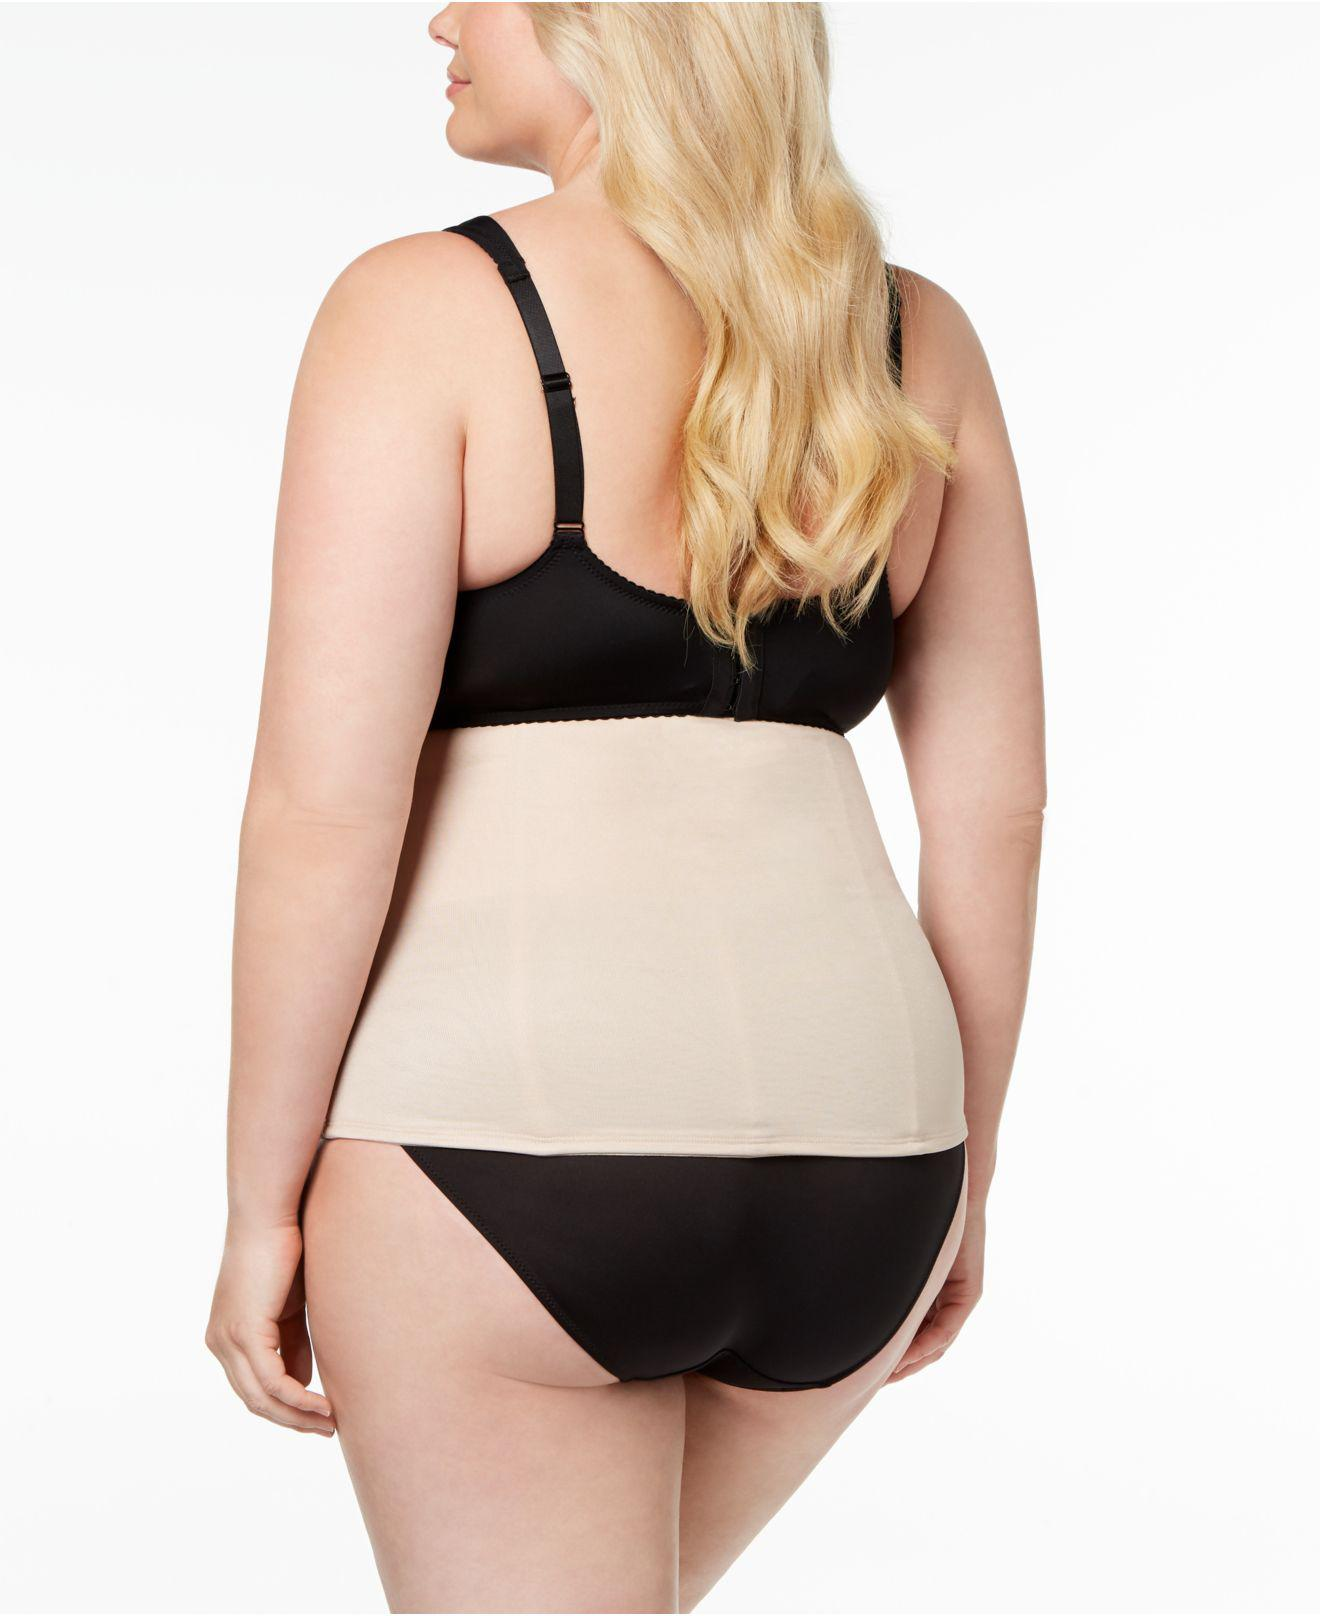 405f4c52d3 Lyst - Miraclesuit Firm Control Waist Cincher Inches Off 2615 in Black